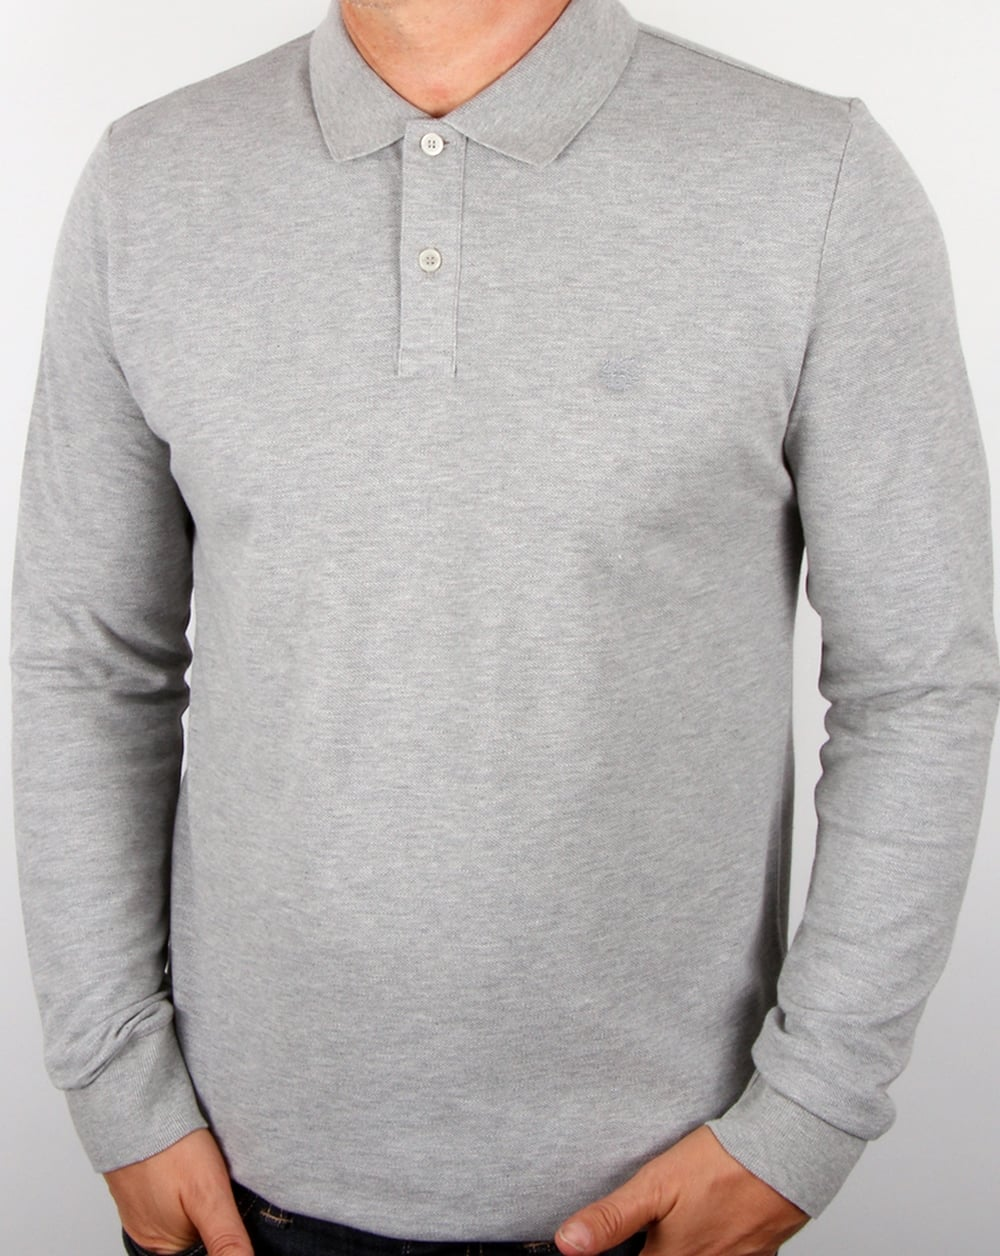 Buy grey long sleeve shirt 51 off for Xlt long sleeve polo shirts